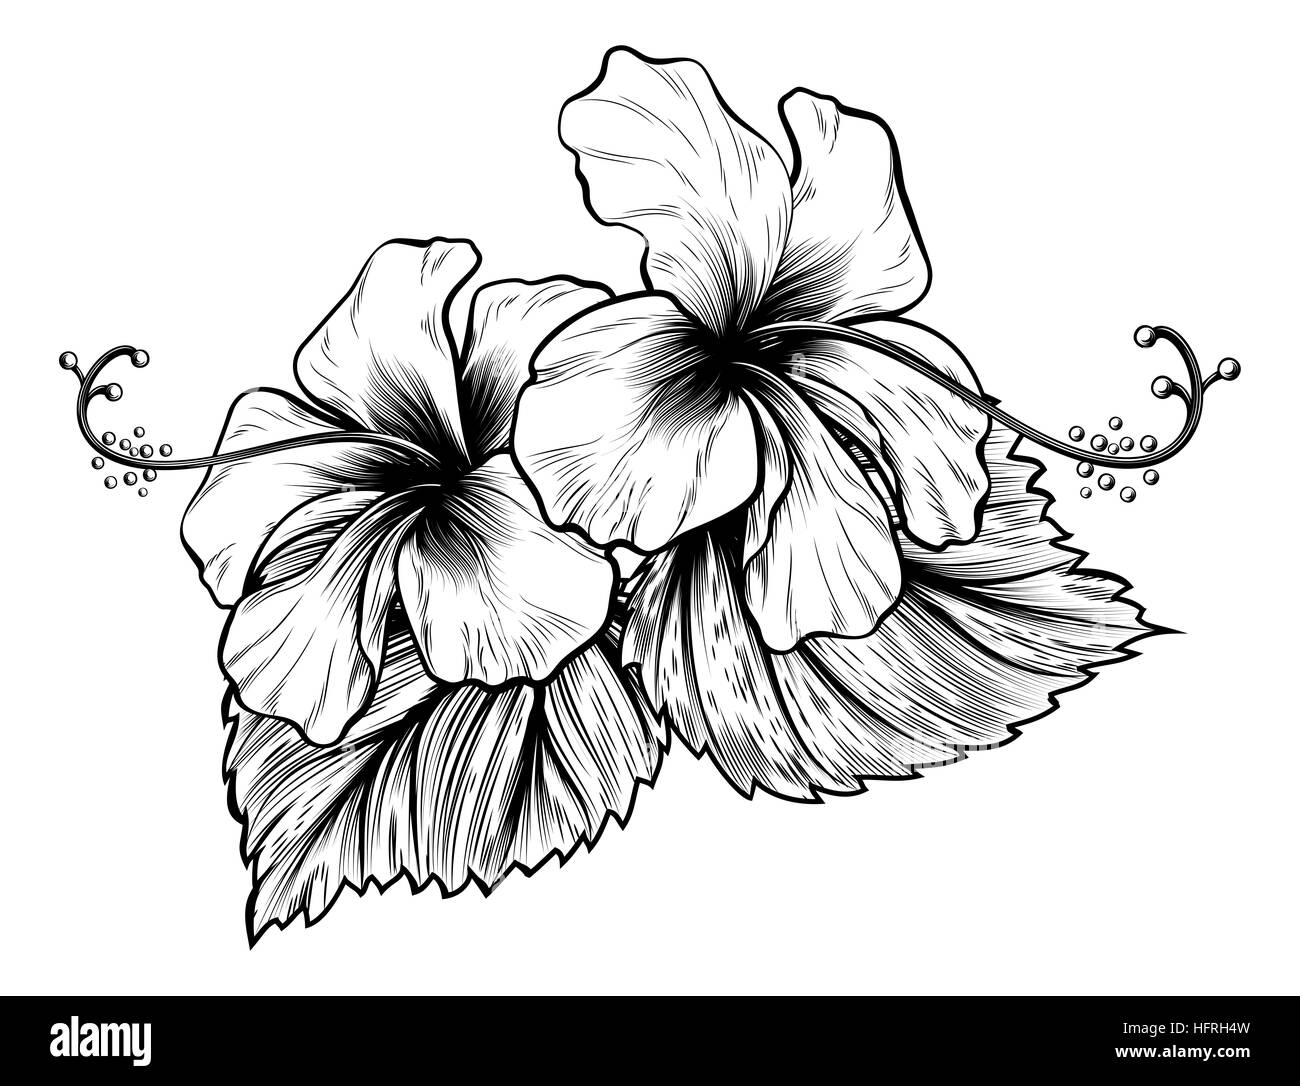 Hawaiian hibiscus black and white stock photos images alamy hibiscus flowers in a vintage woodcut engraved etching style stock image izmirmasajfo